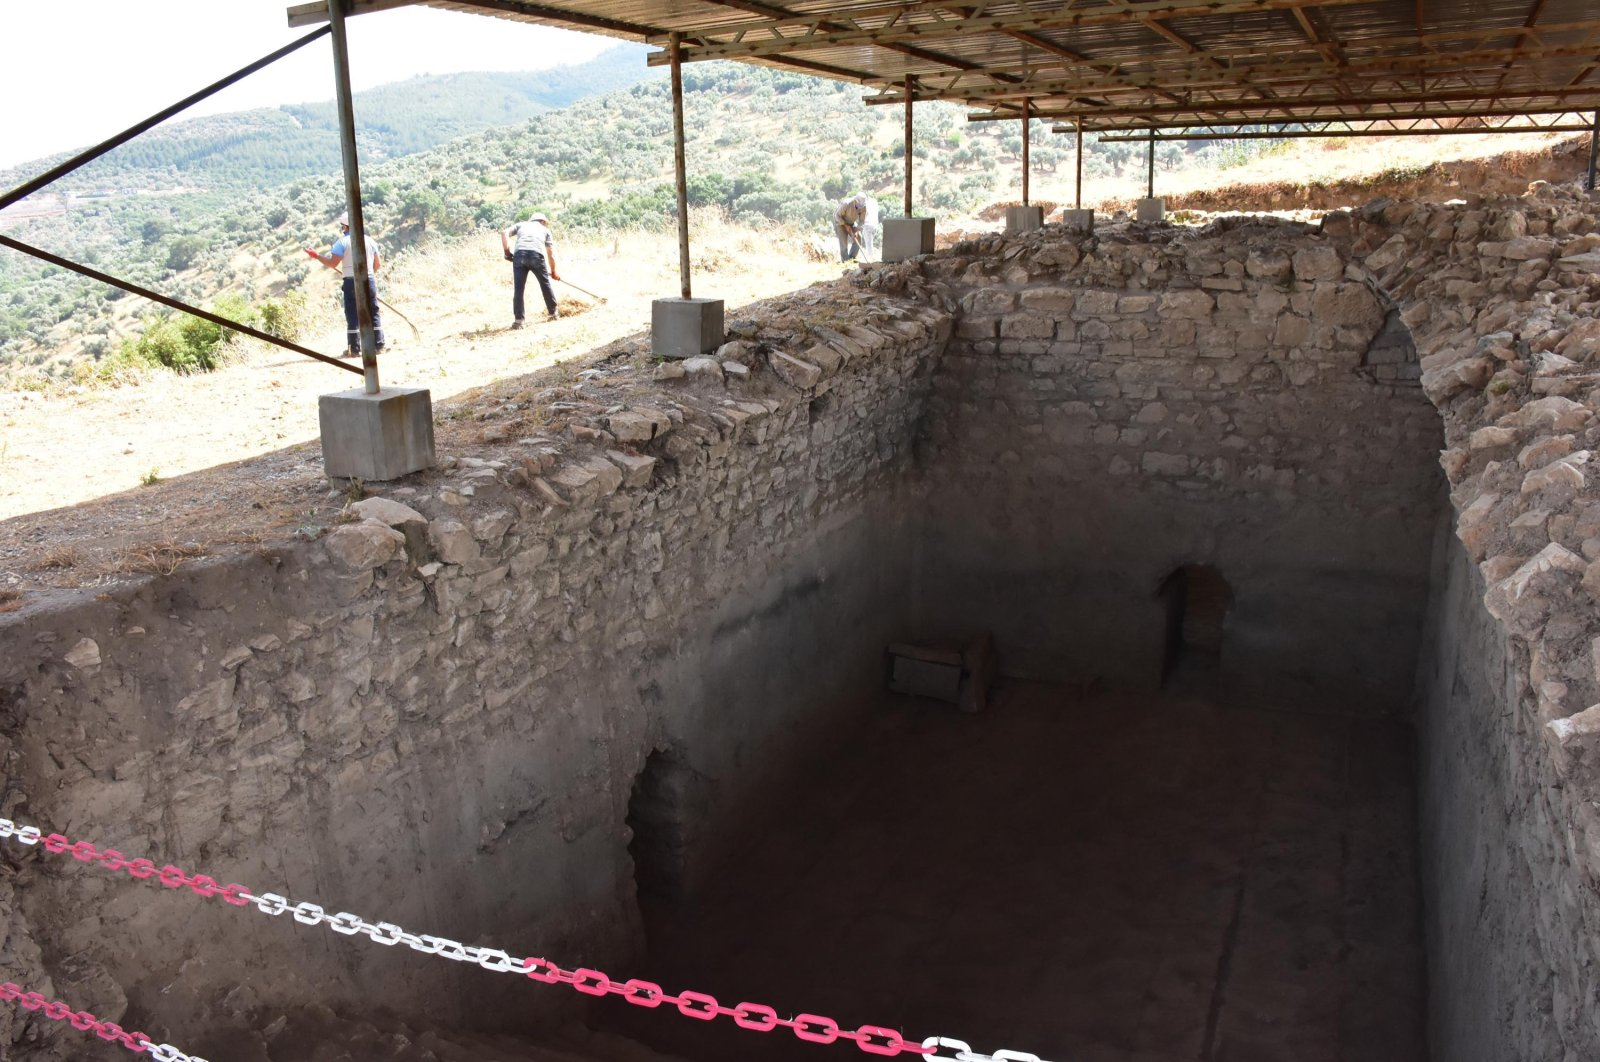 Specialists work around the excavation site of the cisterns at the classical city of Metropolis in Izmir, Turkey, May 30, 2021. (DHA Photo)